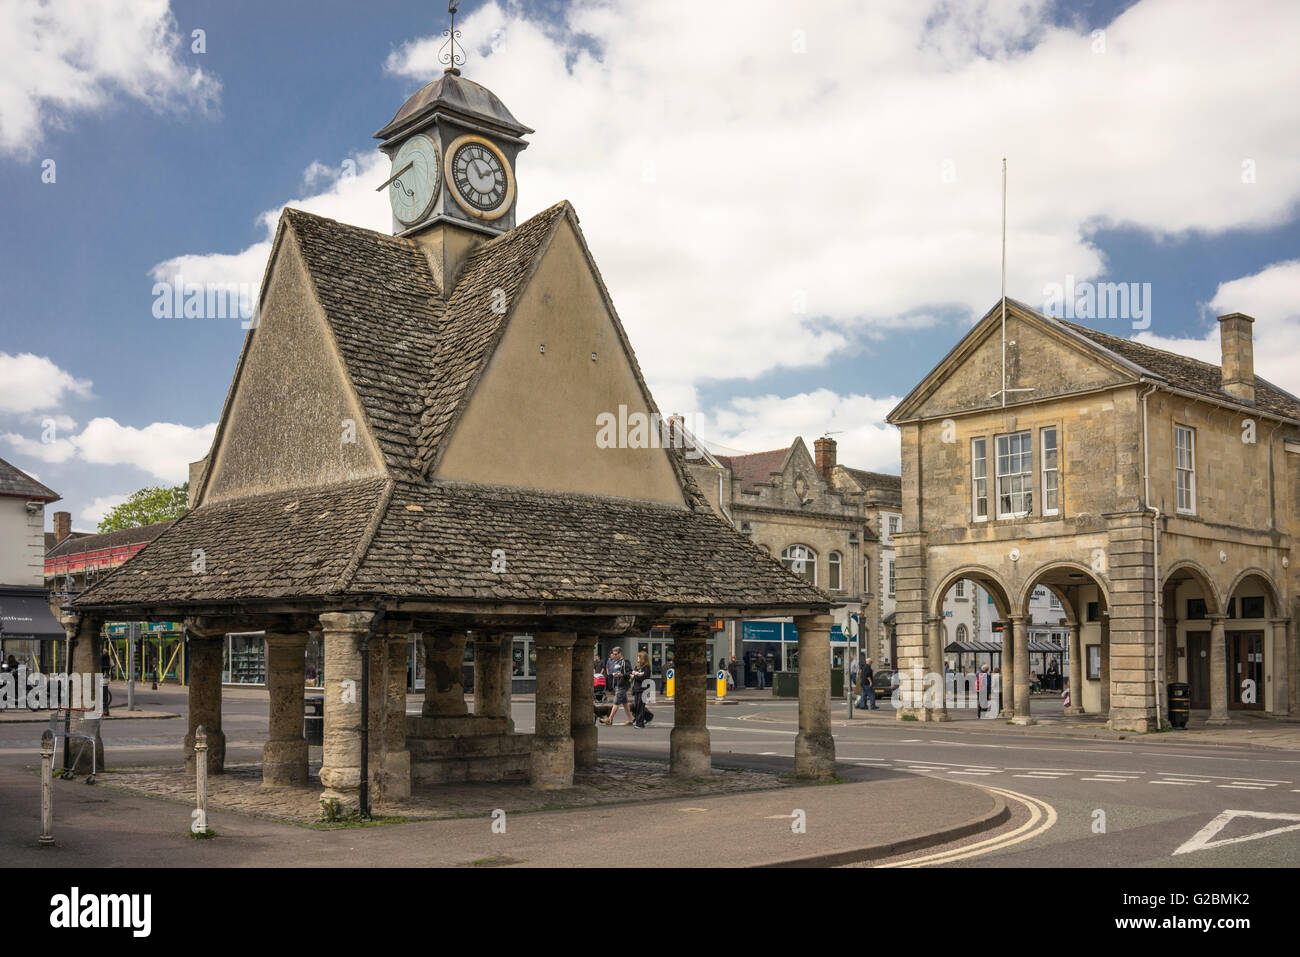 The Buttercross and town hall in Market Square, Witney, Oxfordshire - Stock Image